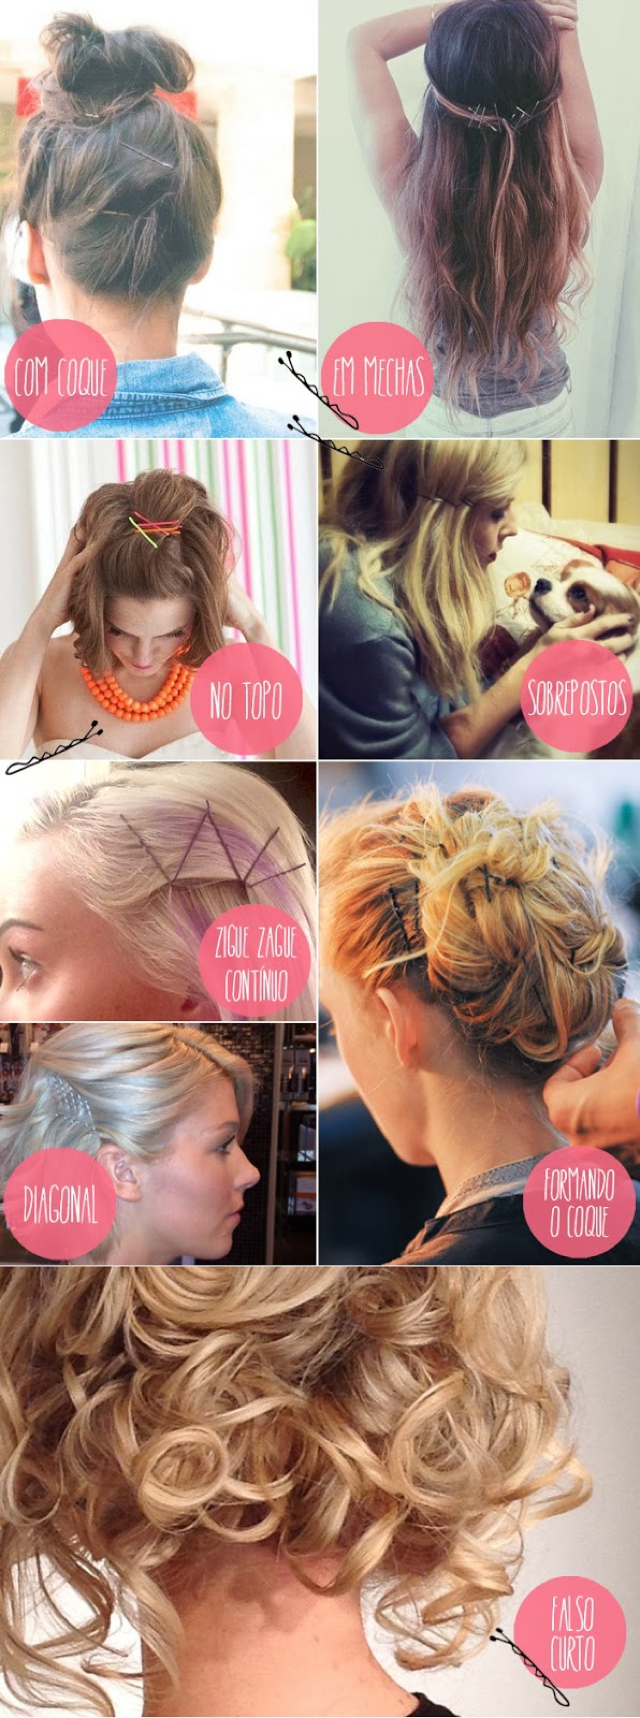 Hair ideas with hair pins 05